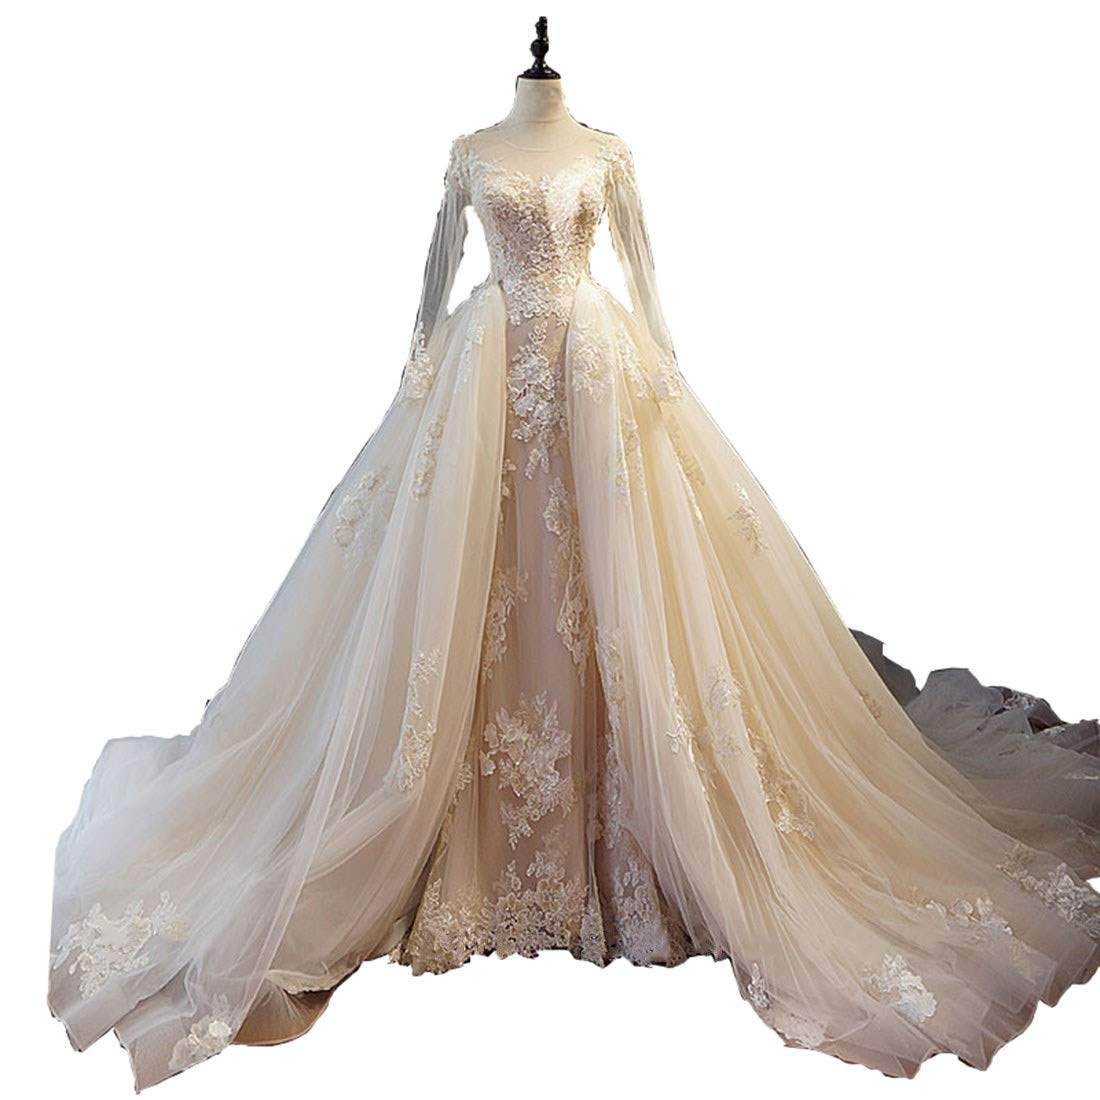 0a76683dc9d Aries Tuttle Champagne Mermaid Cathedral Train Corset Wedding Dress  Appliques Tulle Bridal Gown at Amazon Women s Clothing store